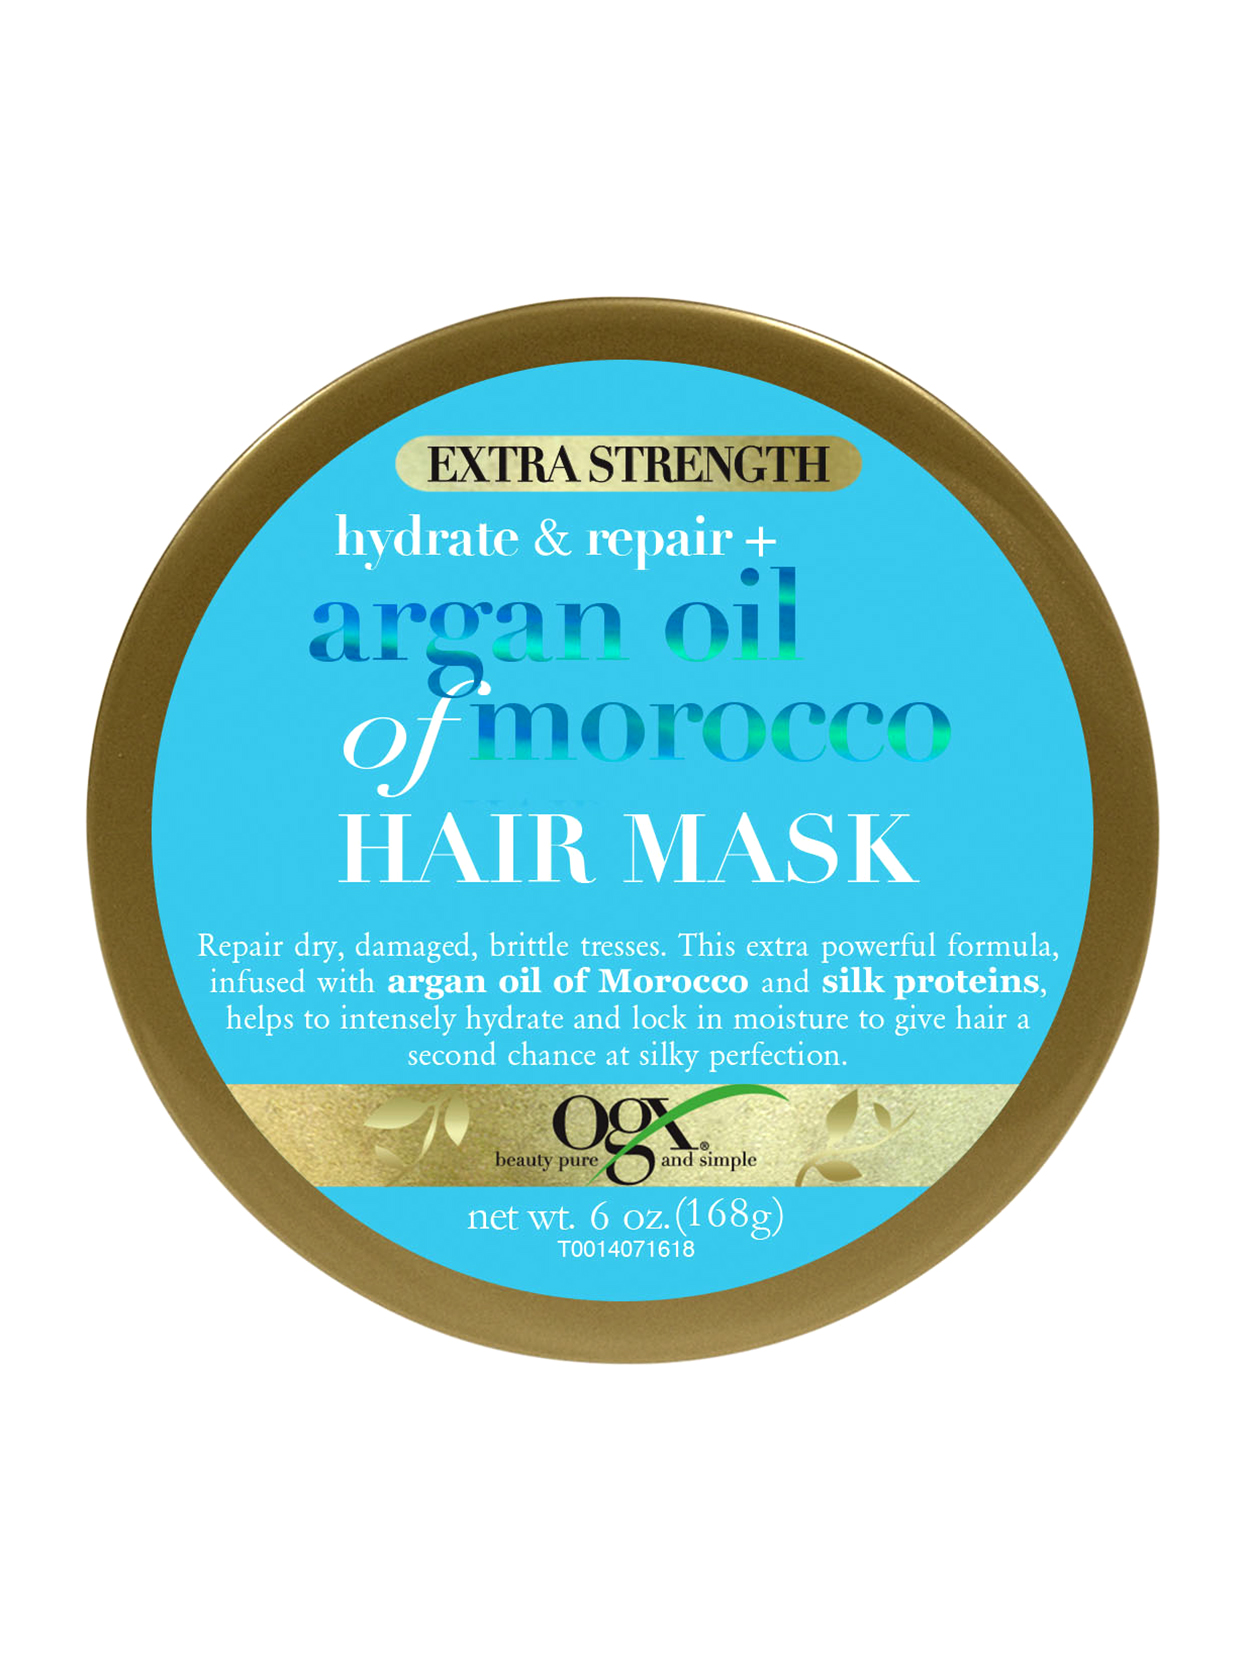 ogx-argan oil of morocco hair mask